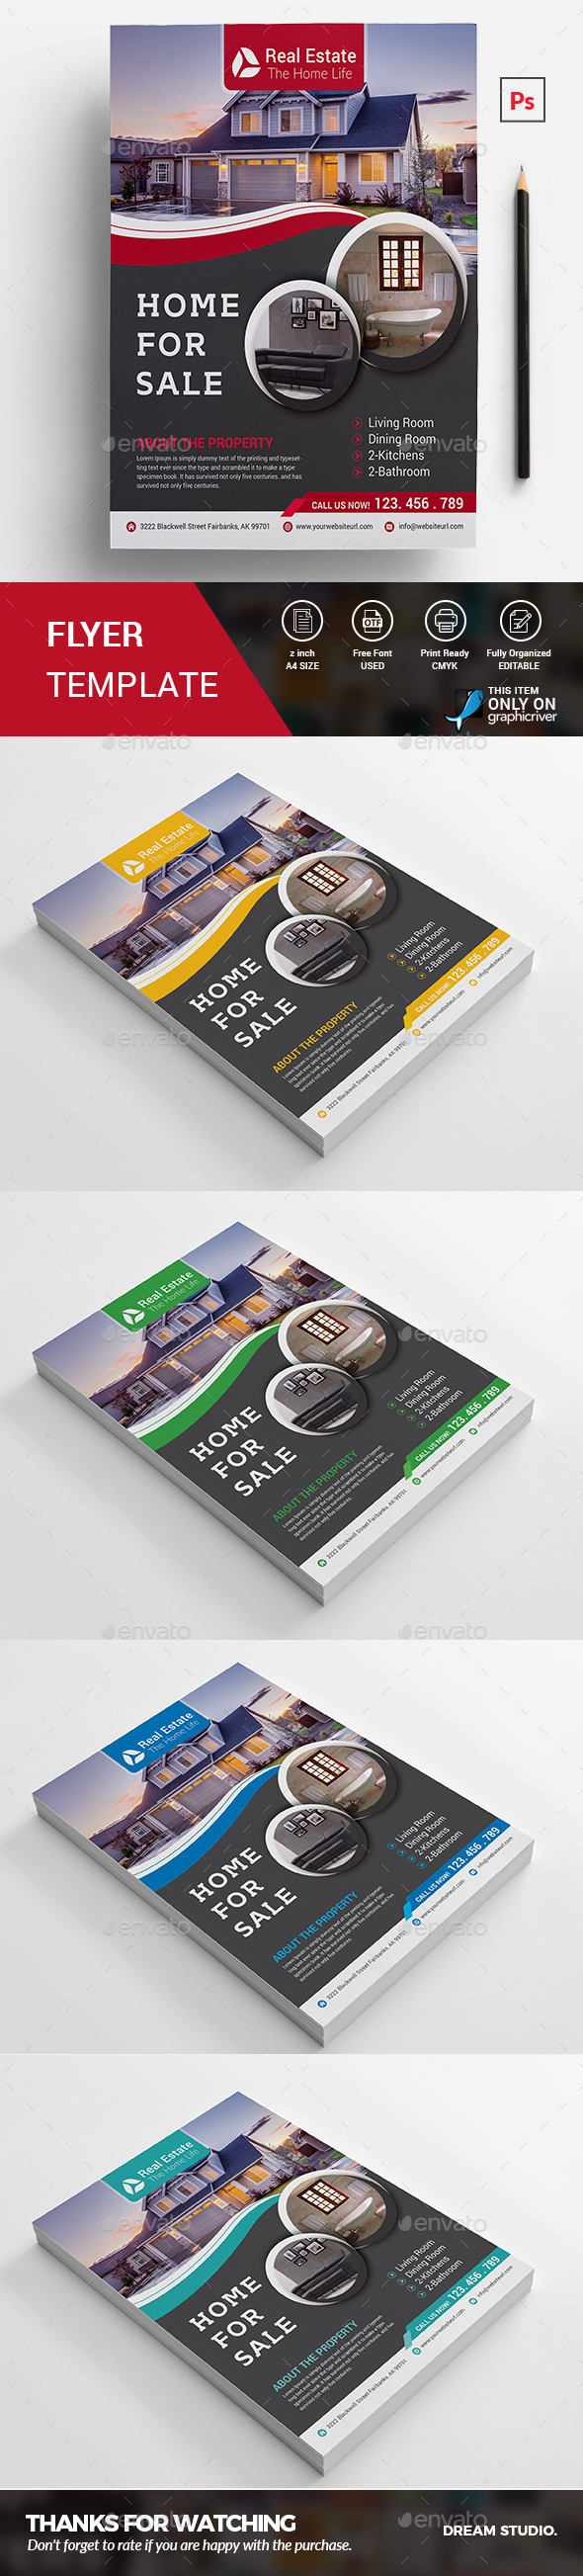 Real Estate Flyer - Corporate Flyers